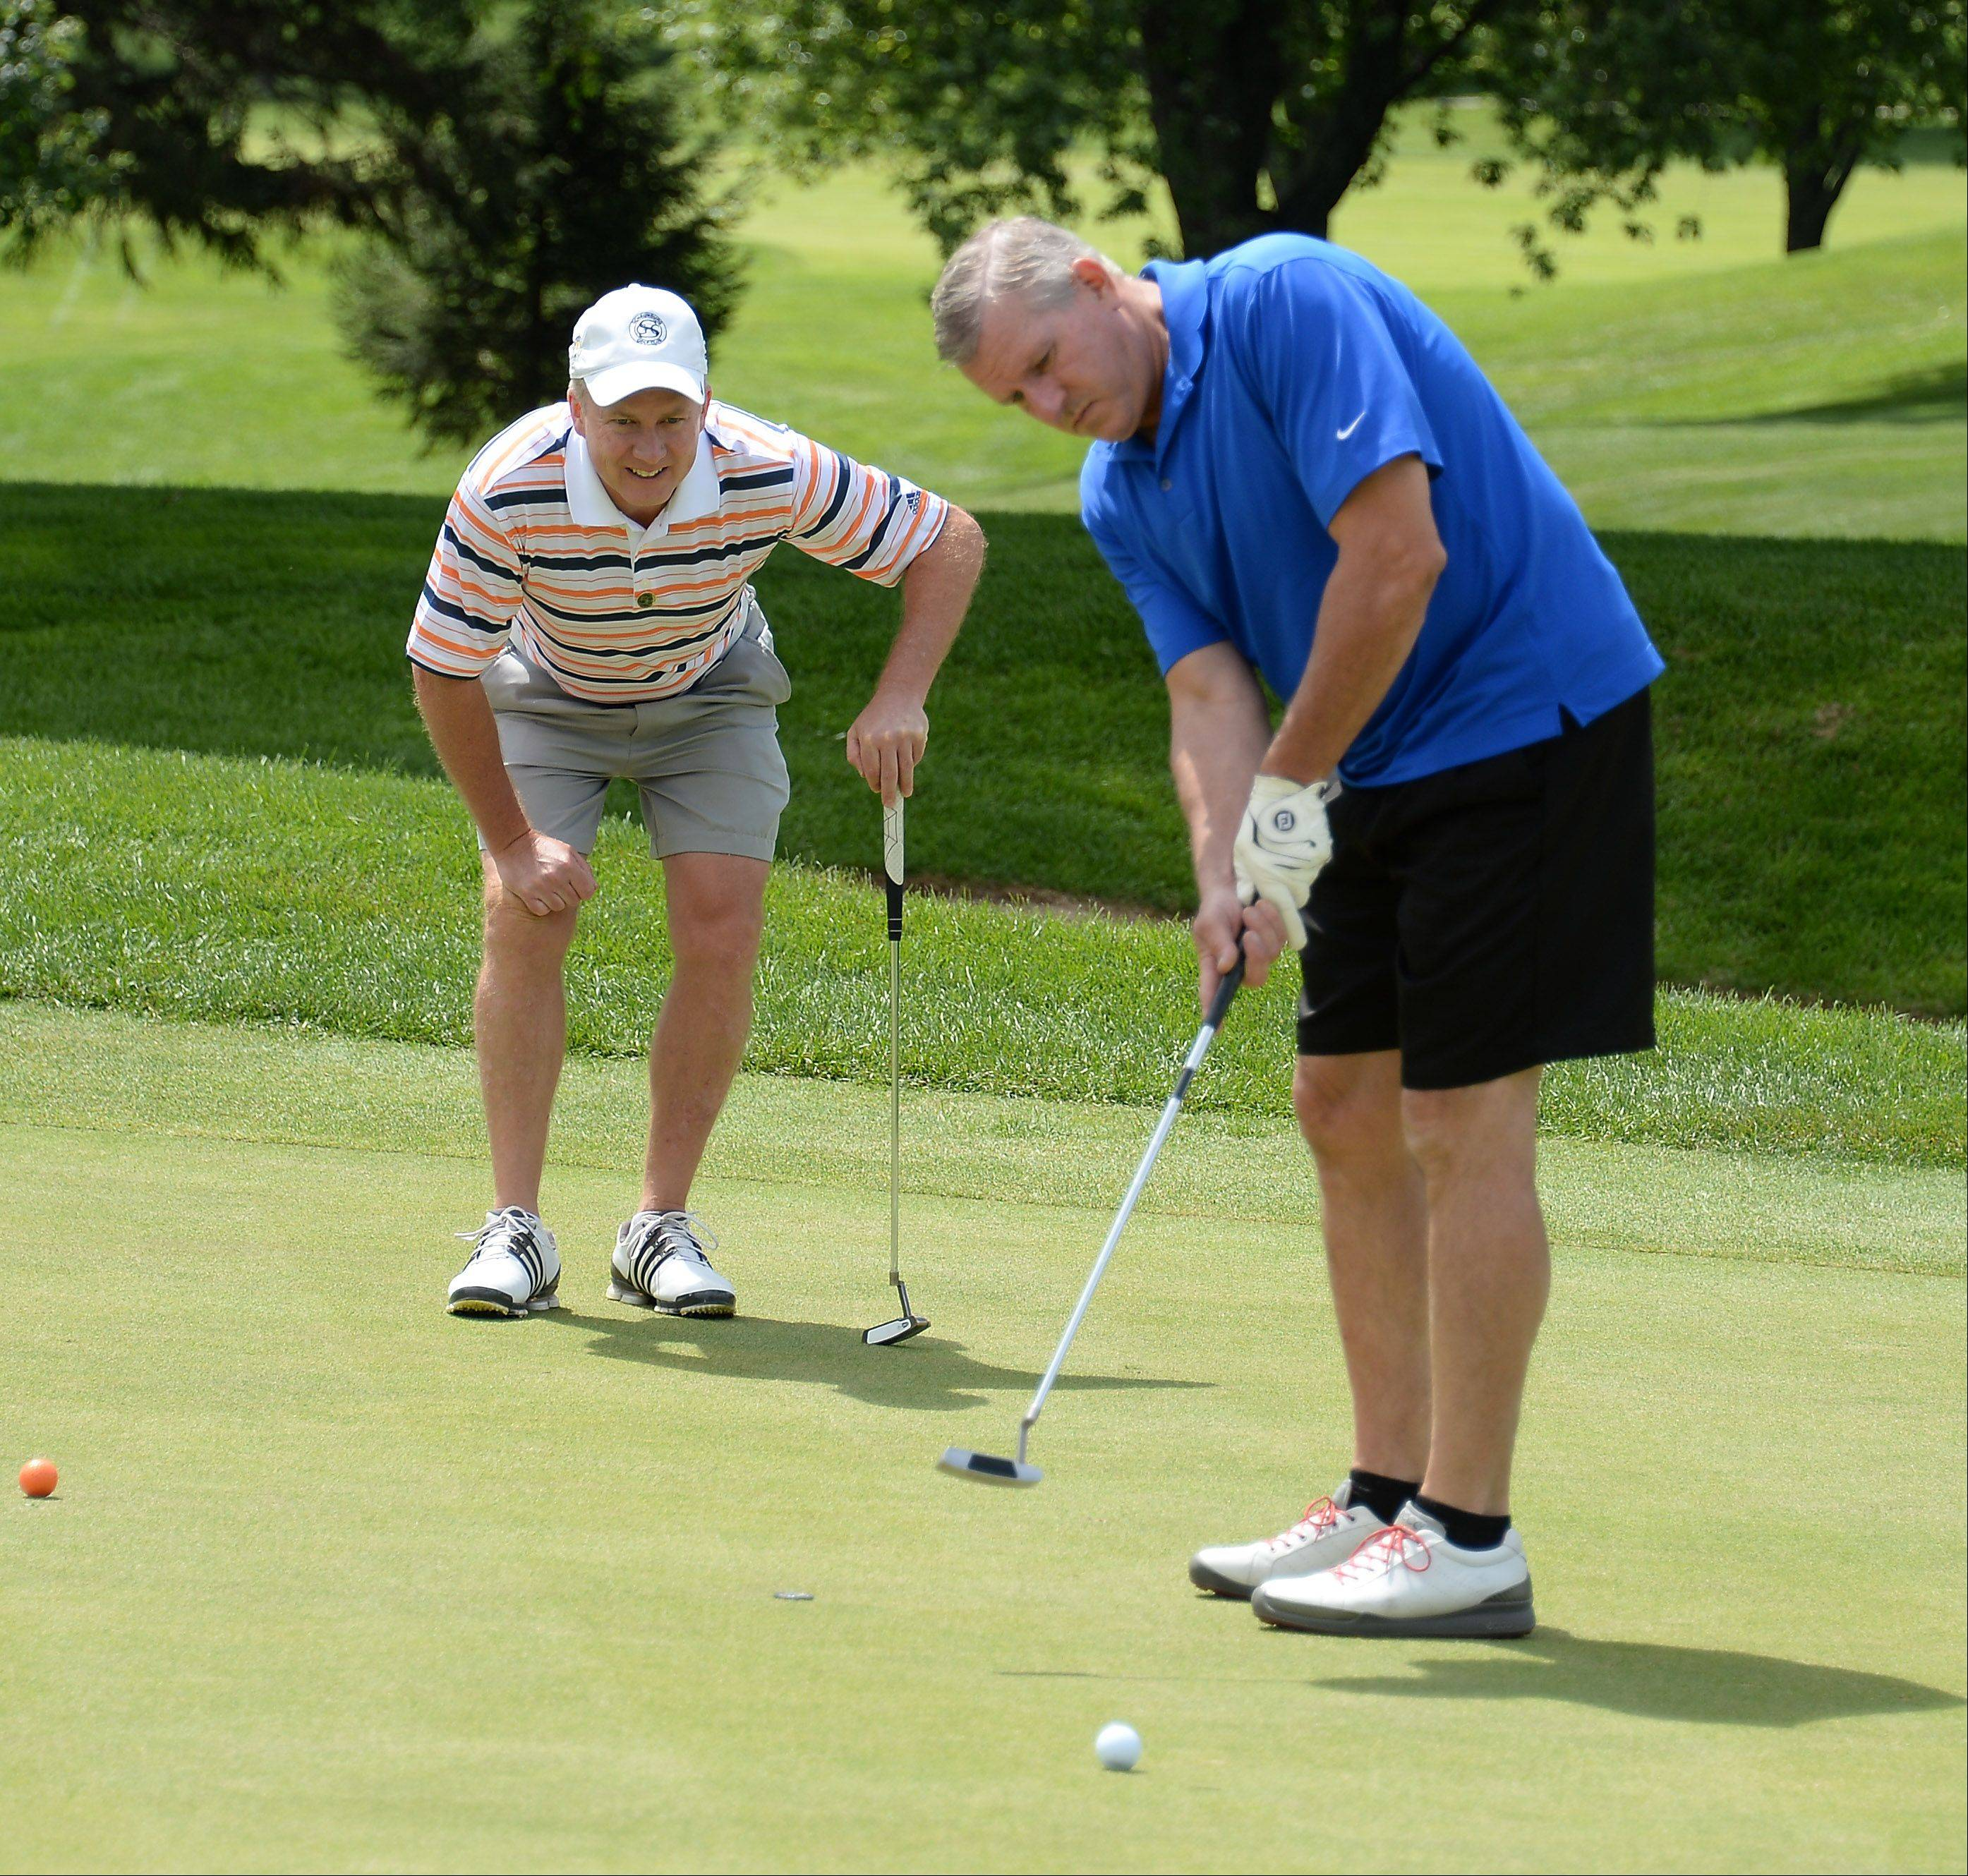 Tony LaFrenere, executive director of the Schaumburg Park District and a former golf pro, watches Tony Lauber of Bartlett putt on the sixth hole.